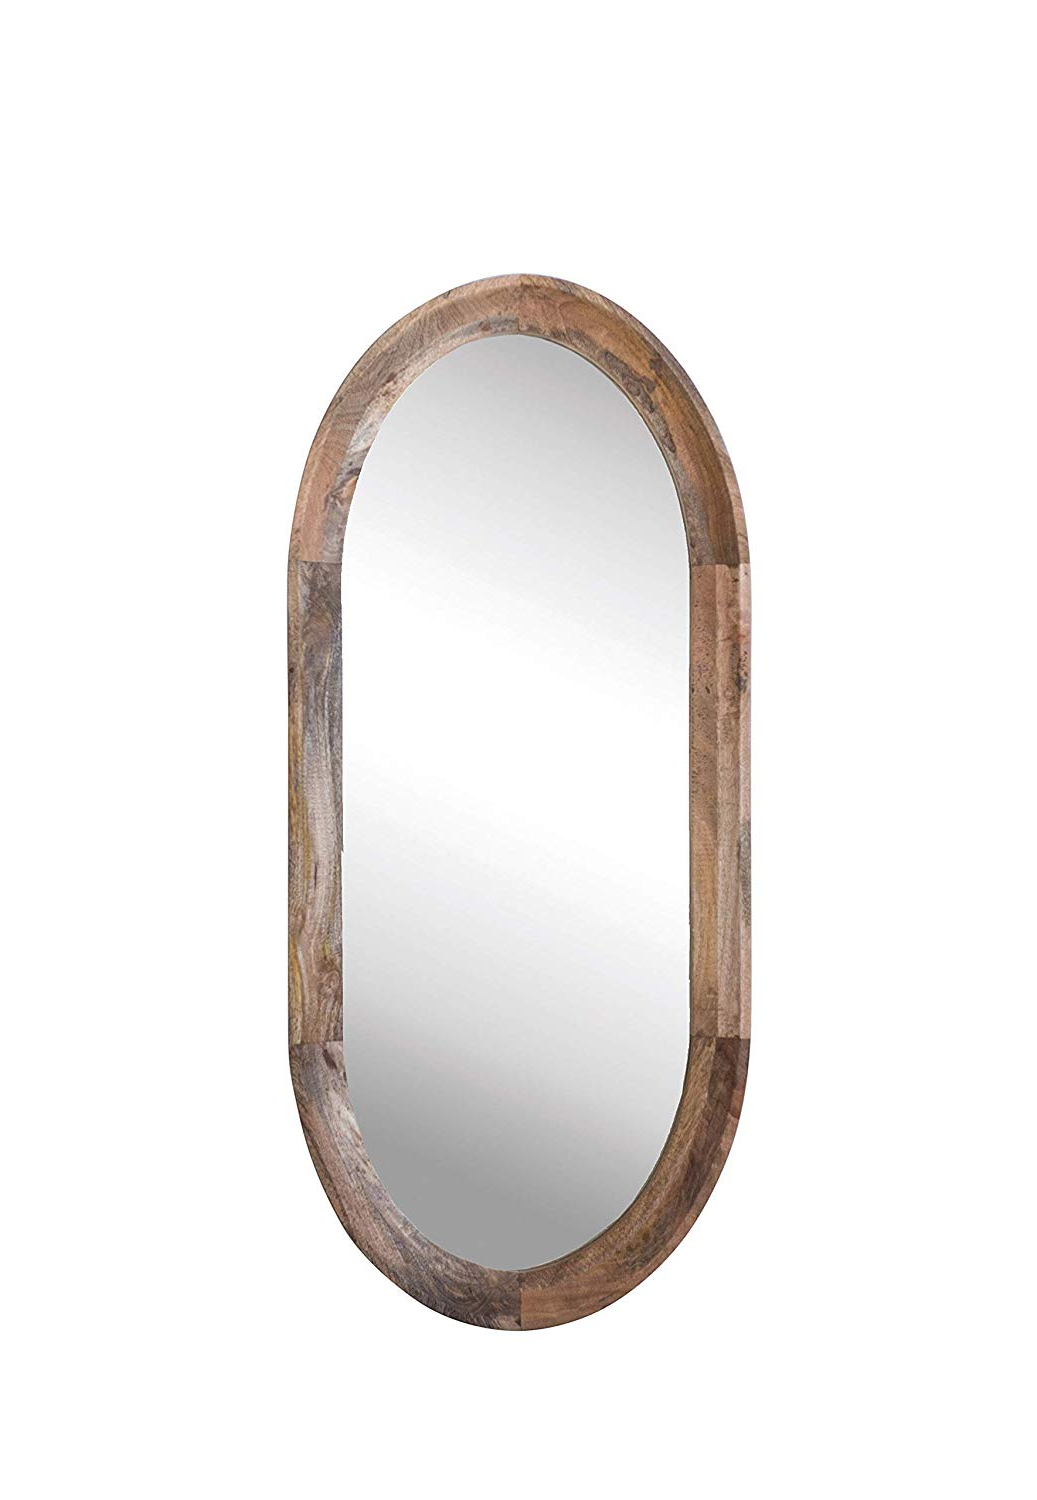 Oval Wood Wall Mirrors With Popular Creative Co Op Oval Wall Mirror With Mango Wood Frame (View 10 of 20)